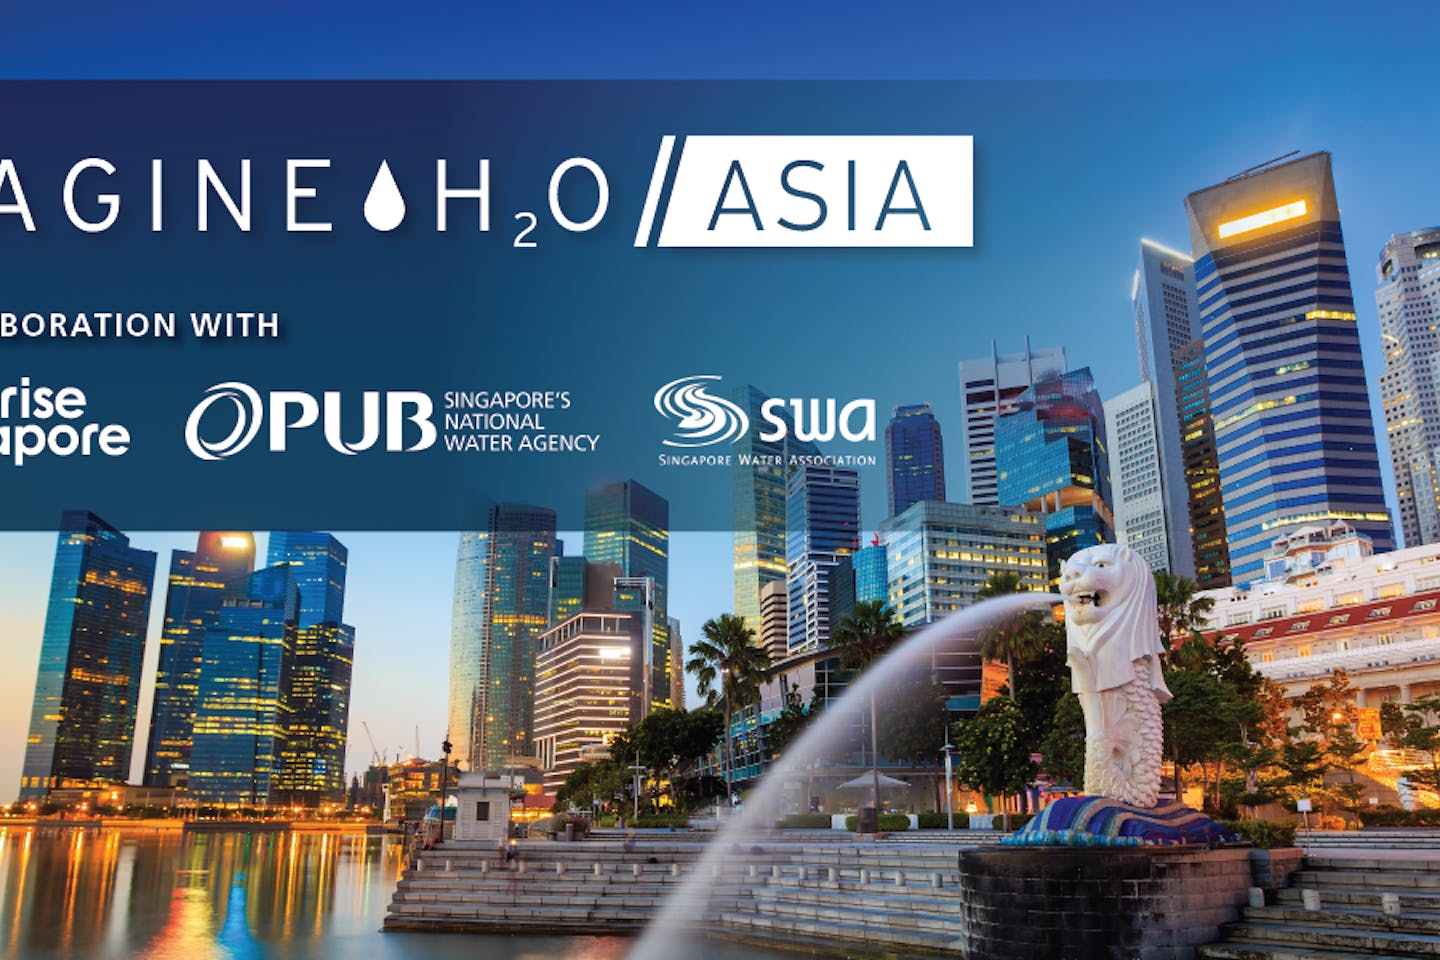 Imagine H2O Asia: Water startups invited to apply to imagine H2O's new Singapore-based, regional accelerator